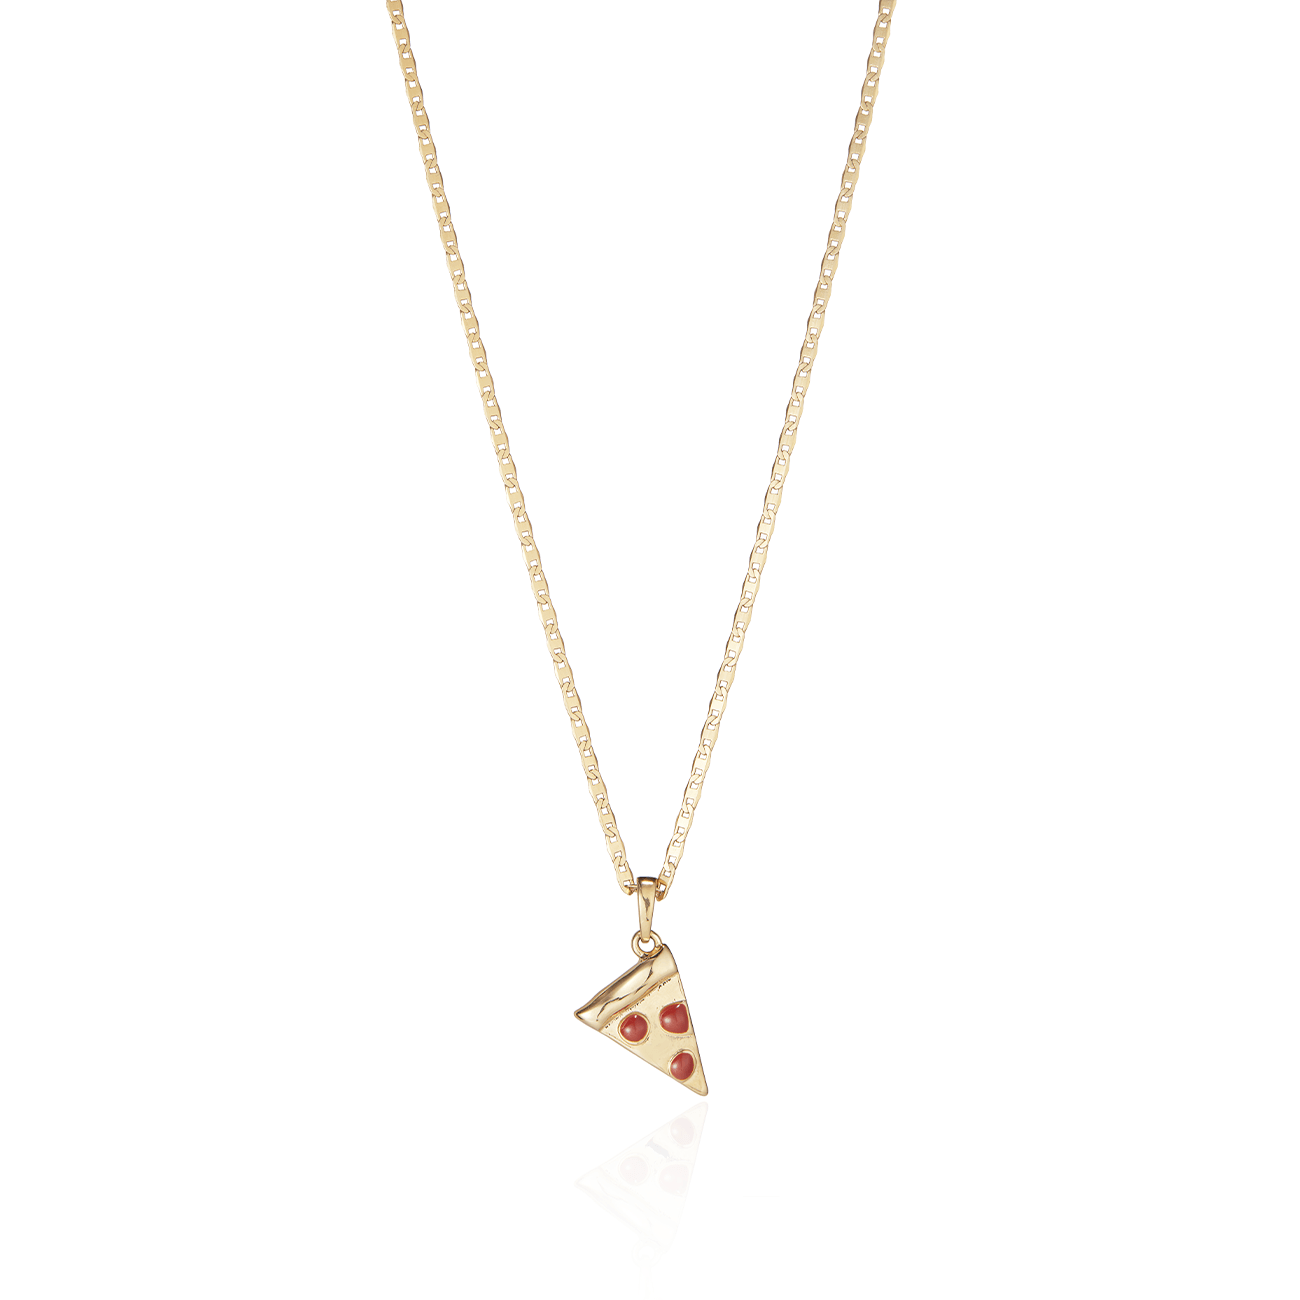 Slice Slice Baby Charm & Elli Chain Necklace